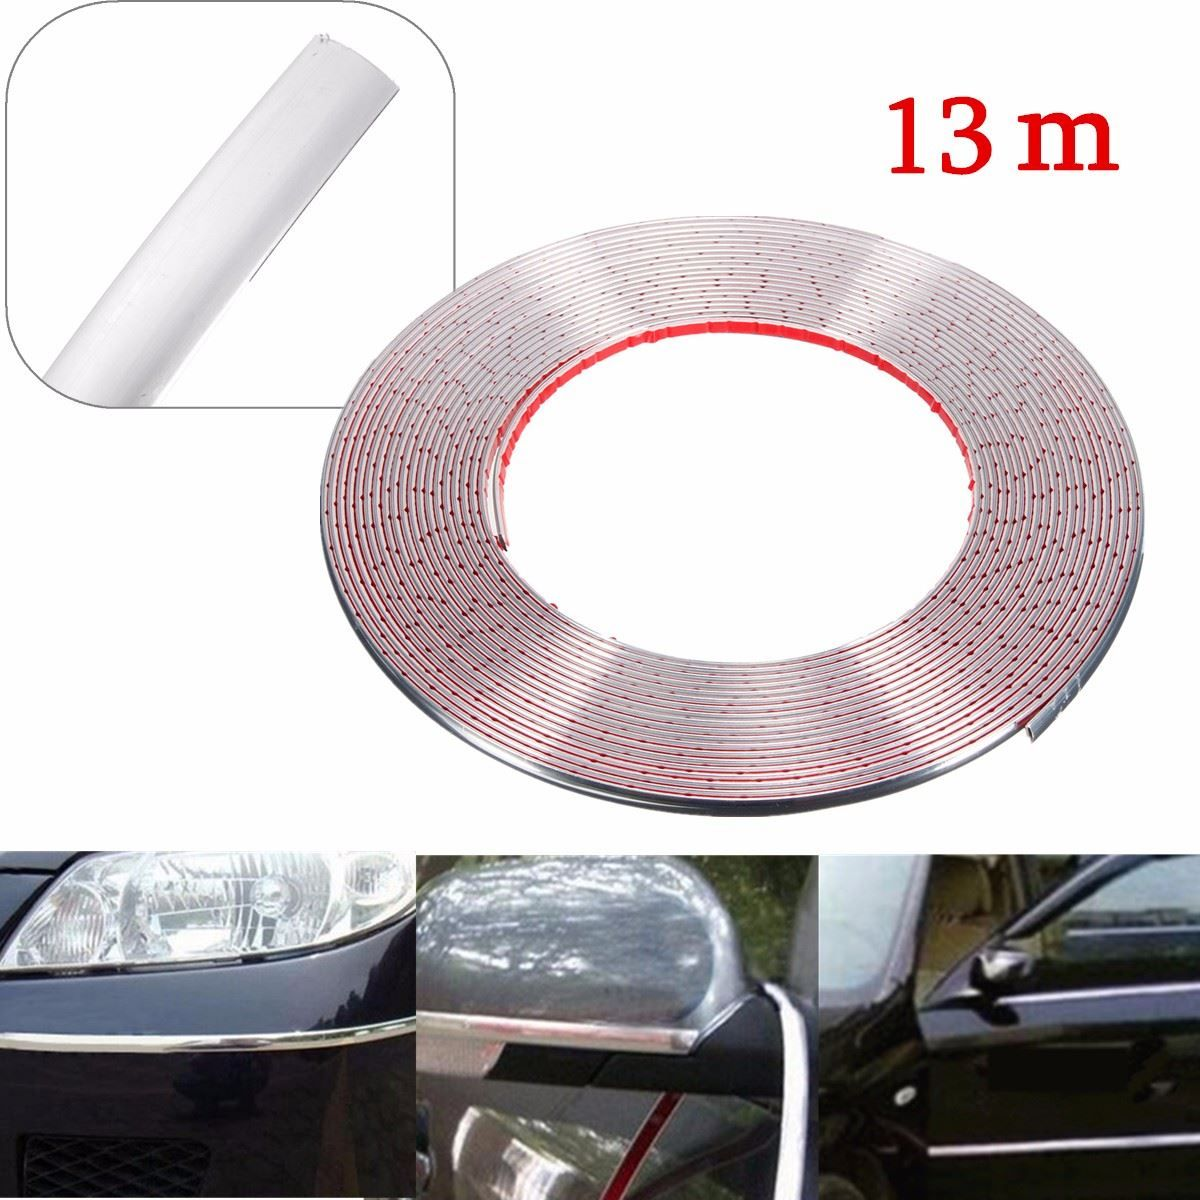 13m 8mm Silver Chrome Car Door Egde Guard Body Styling Moulding Strip Adhesive Trim